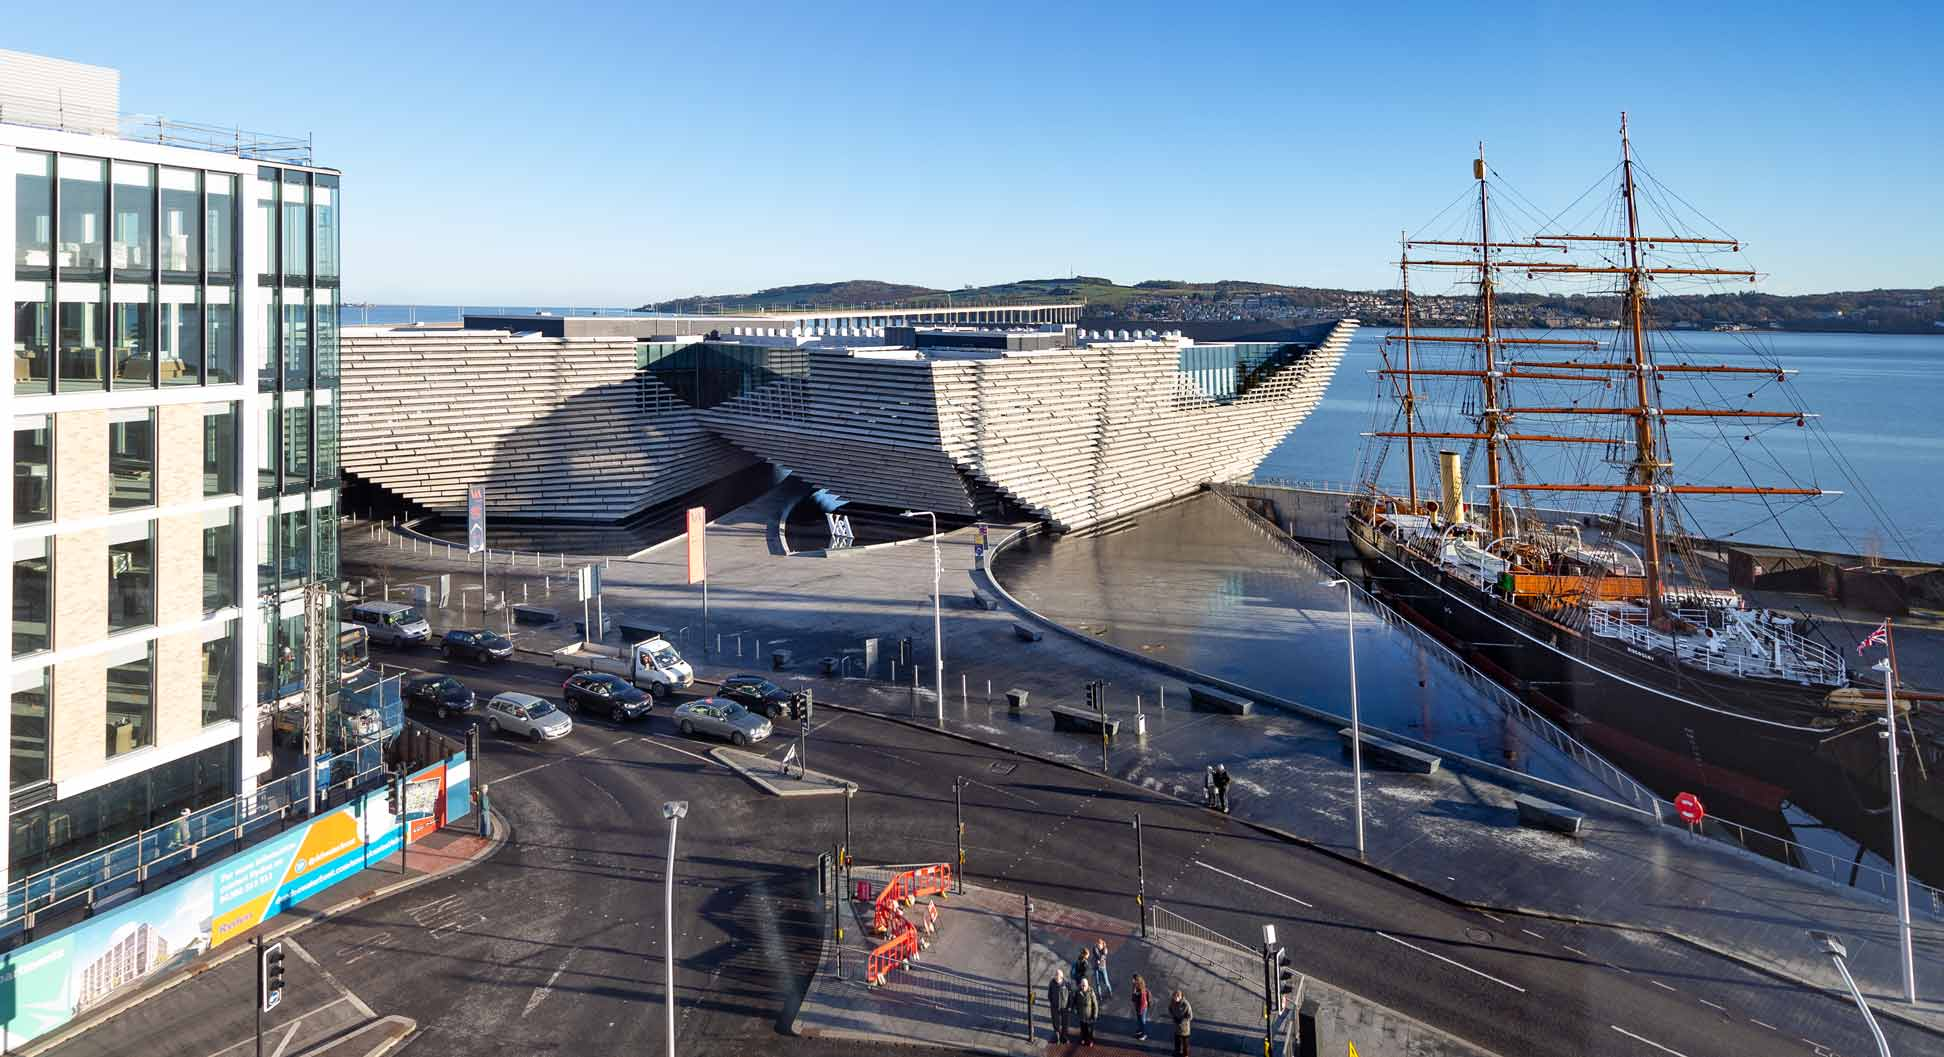 photograph of daytime view of the V&A Museum Dundee from Room 540 window.